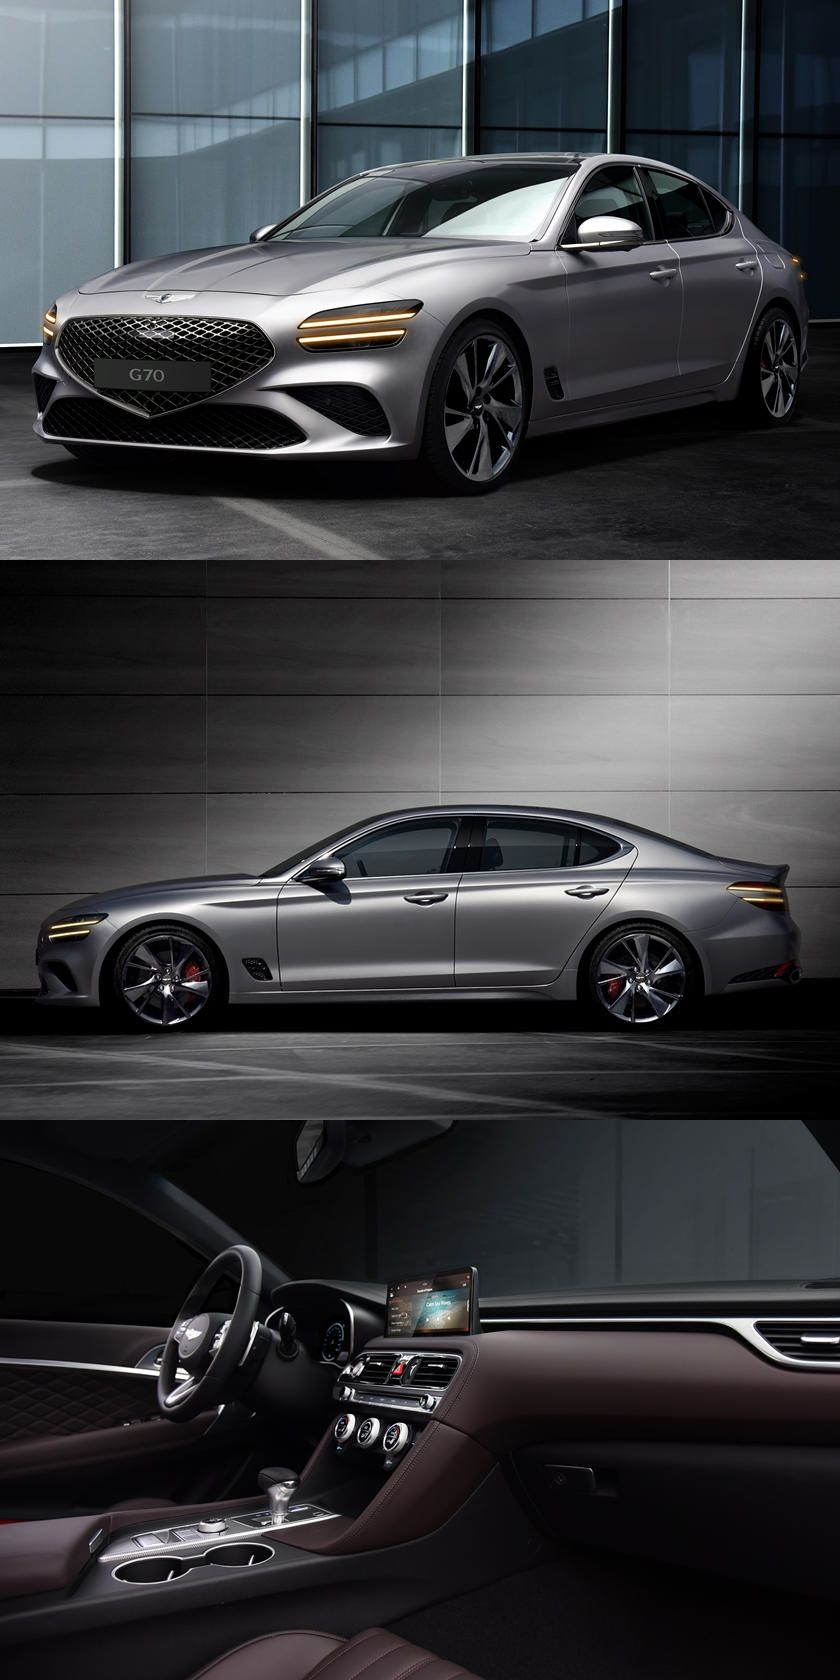 2022 Genesis G70 Revealed With Fresh Styling. It's time